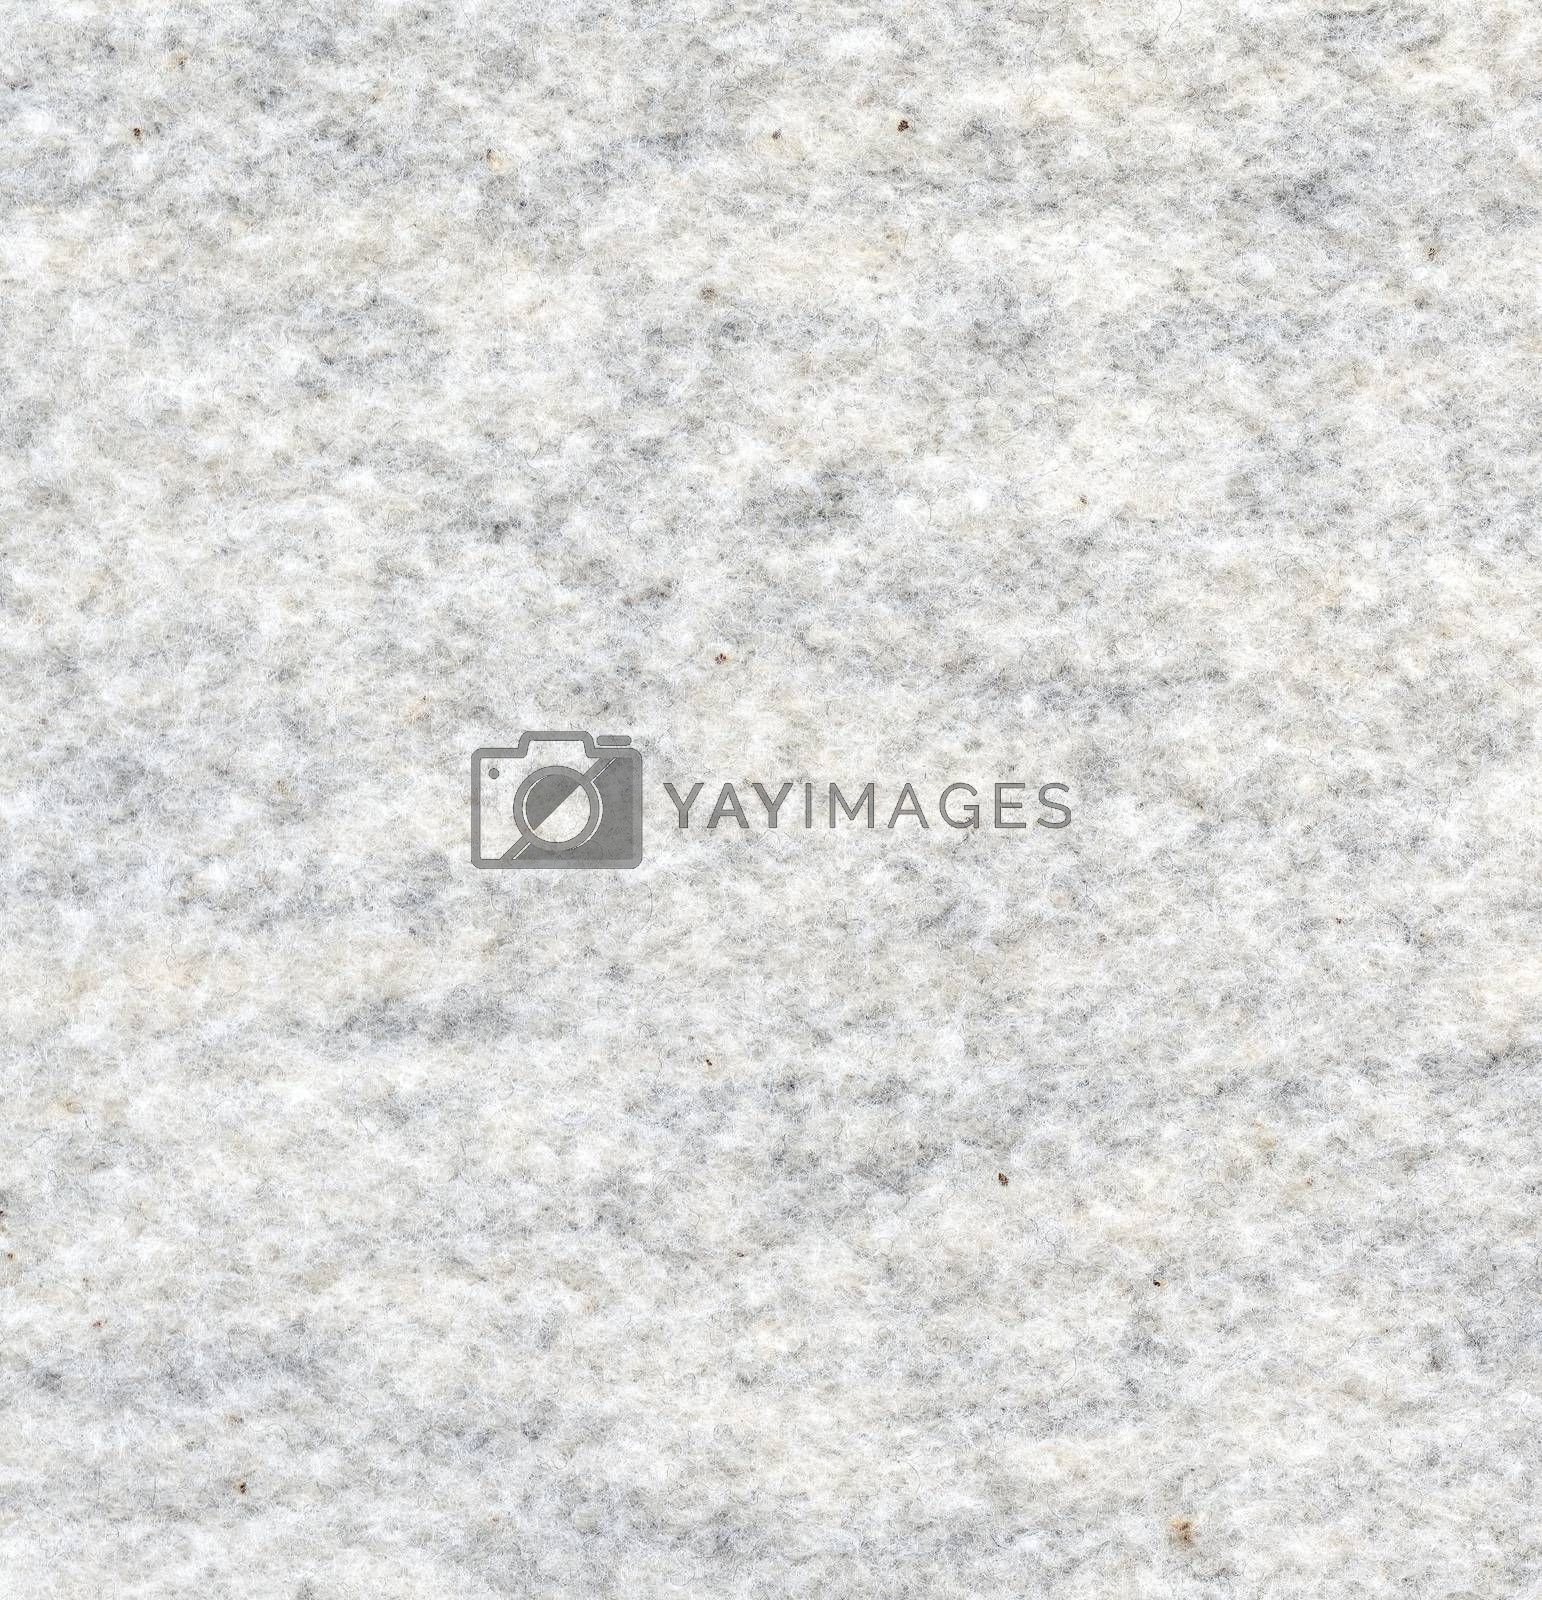 Fabric texture. Light gray color textile background.